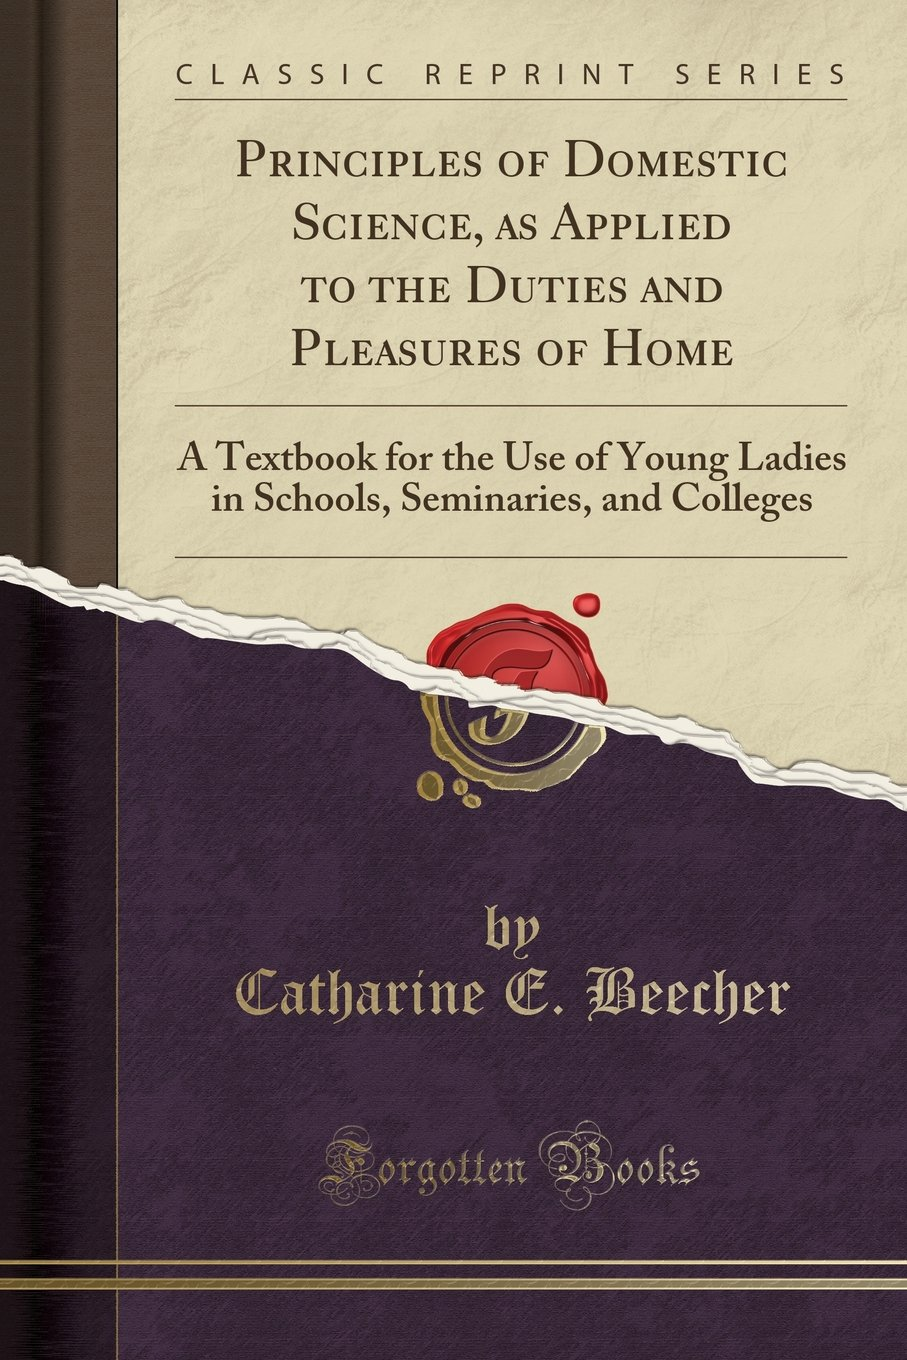 Download Principles of Domestic Science, as Applied to the Duties and Pleasures of Home: A Textbook for the Use of Young Ladies in Schools, Seminaries, and Colleges (Classic Reprint) pdf epub